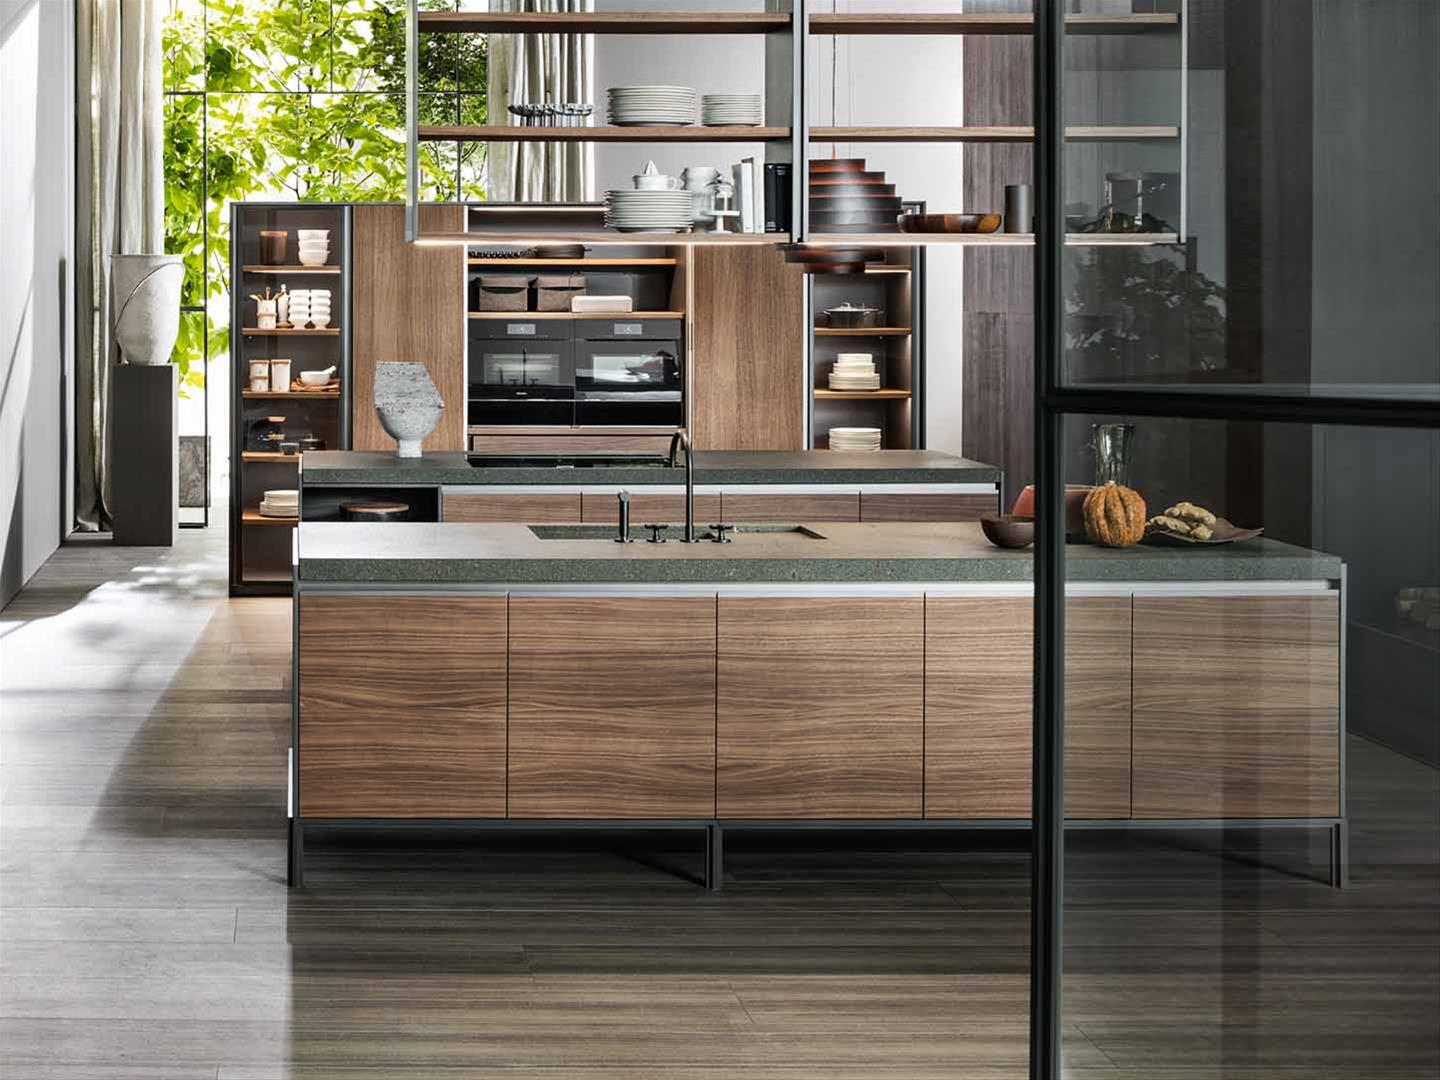 Le essenze per cucine di design in legno dada for Cucine di design